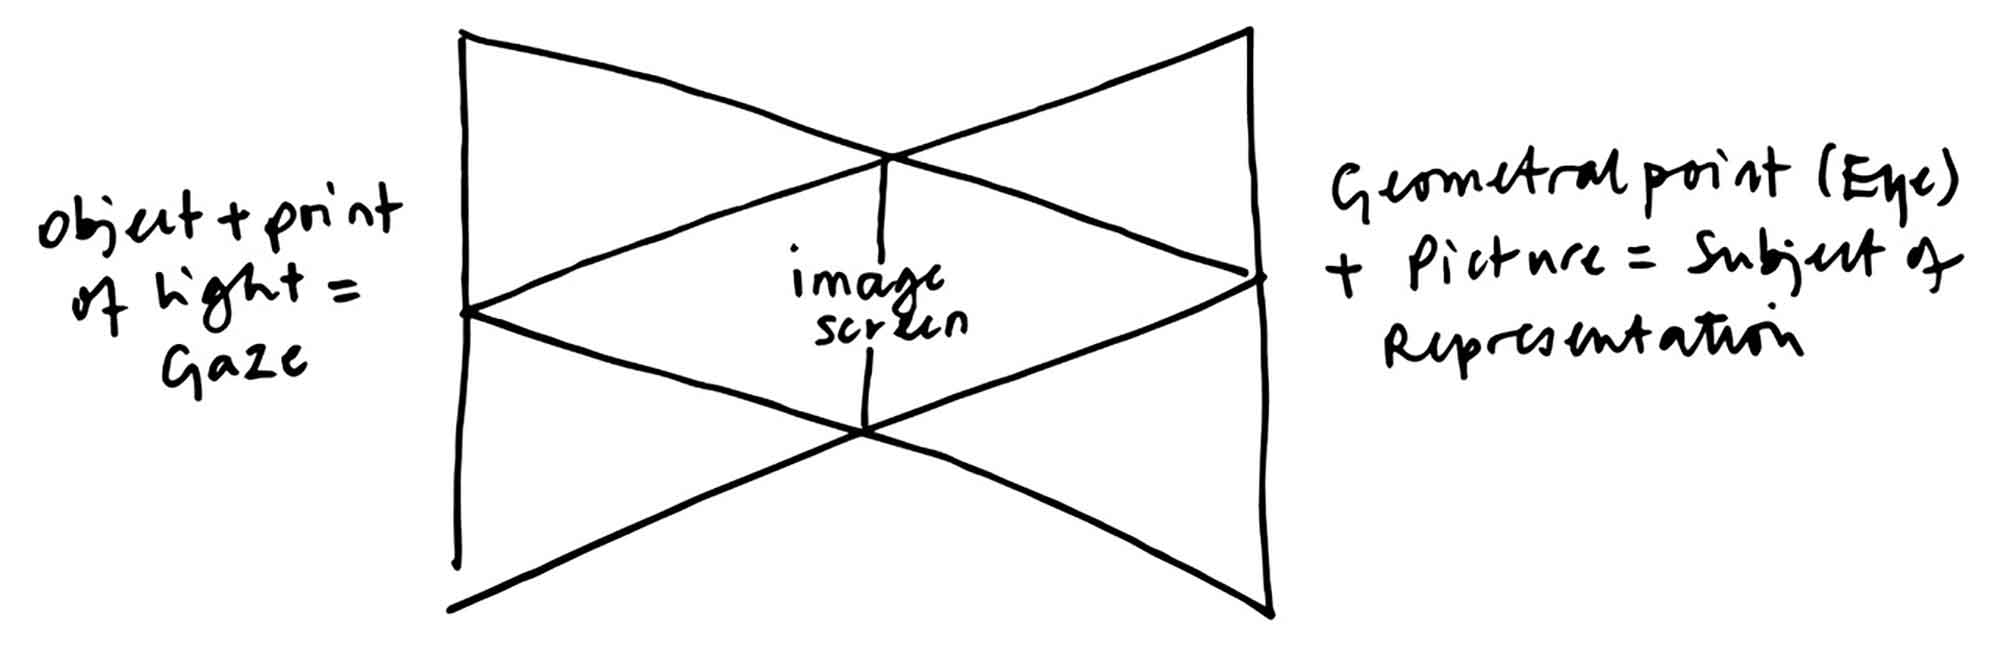 What is a picture? The functioning of the scopic register. Adapted from Jacques Lacan, The Seminar of Jacques Lacan, Book XI: The Four Fundamental Concepts of Psychoanalysis (Le séminaire de Jacques Lacan, livre XI: Les quatre concepts fondamentaux de la psychanalyse [1973]), ed. by Jacques-Alain Miller, tr. by Alan Sheridan, New York: W.W. Norton, 1981, p. 85.